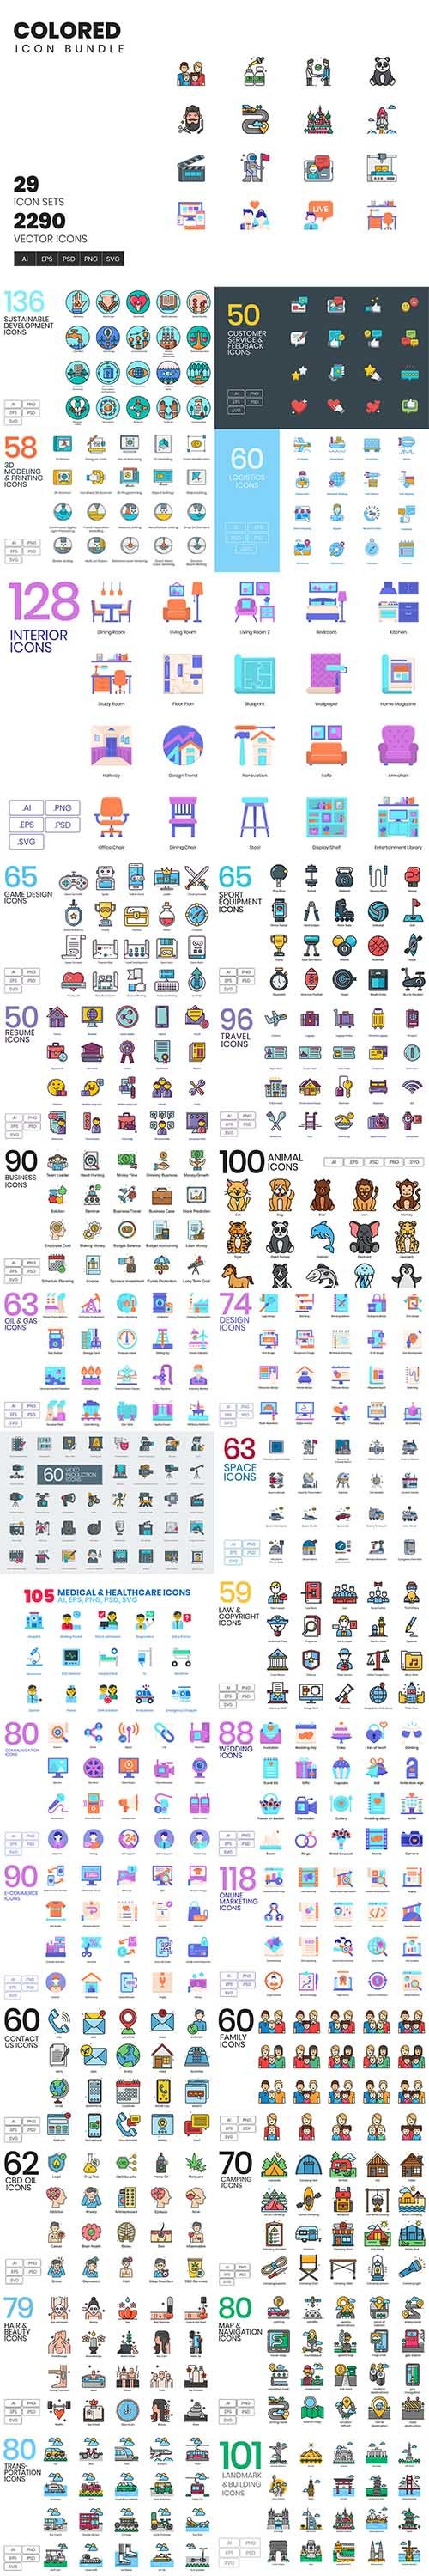 2200+ Icons - Colored Icon Bundle